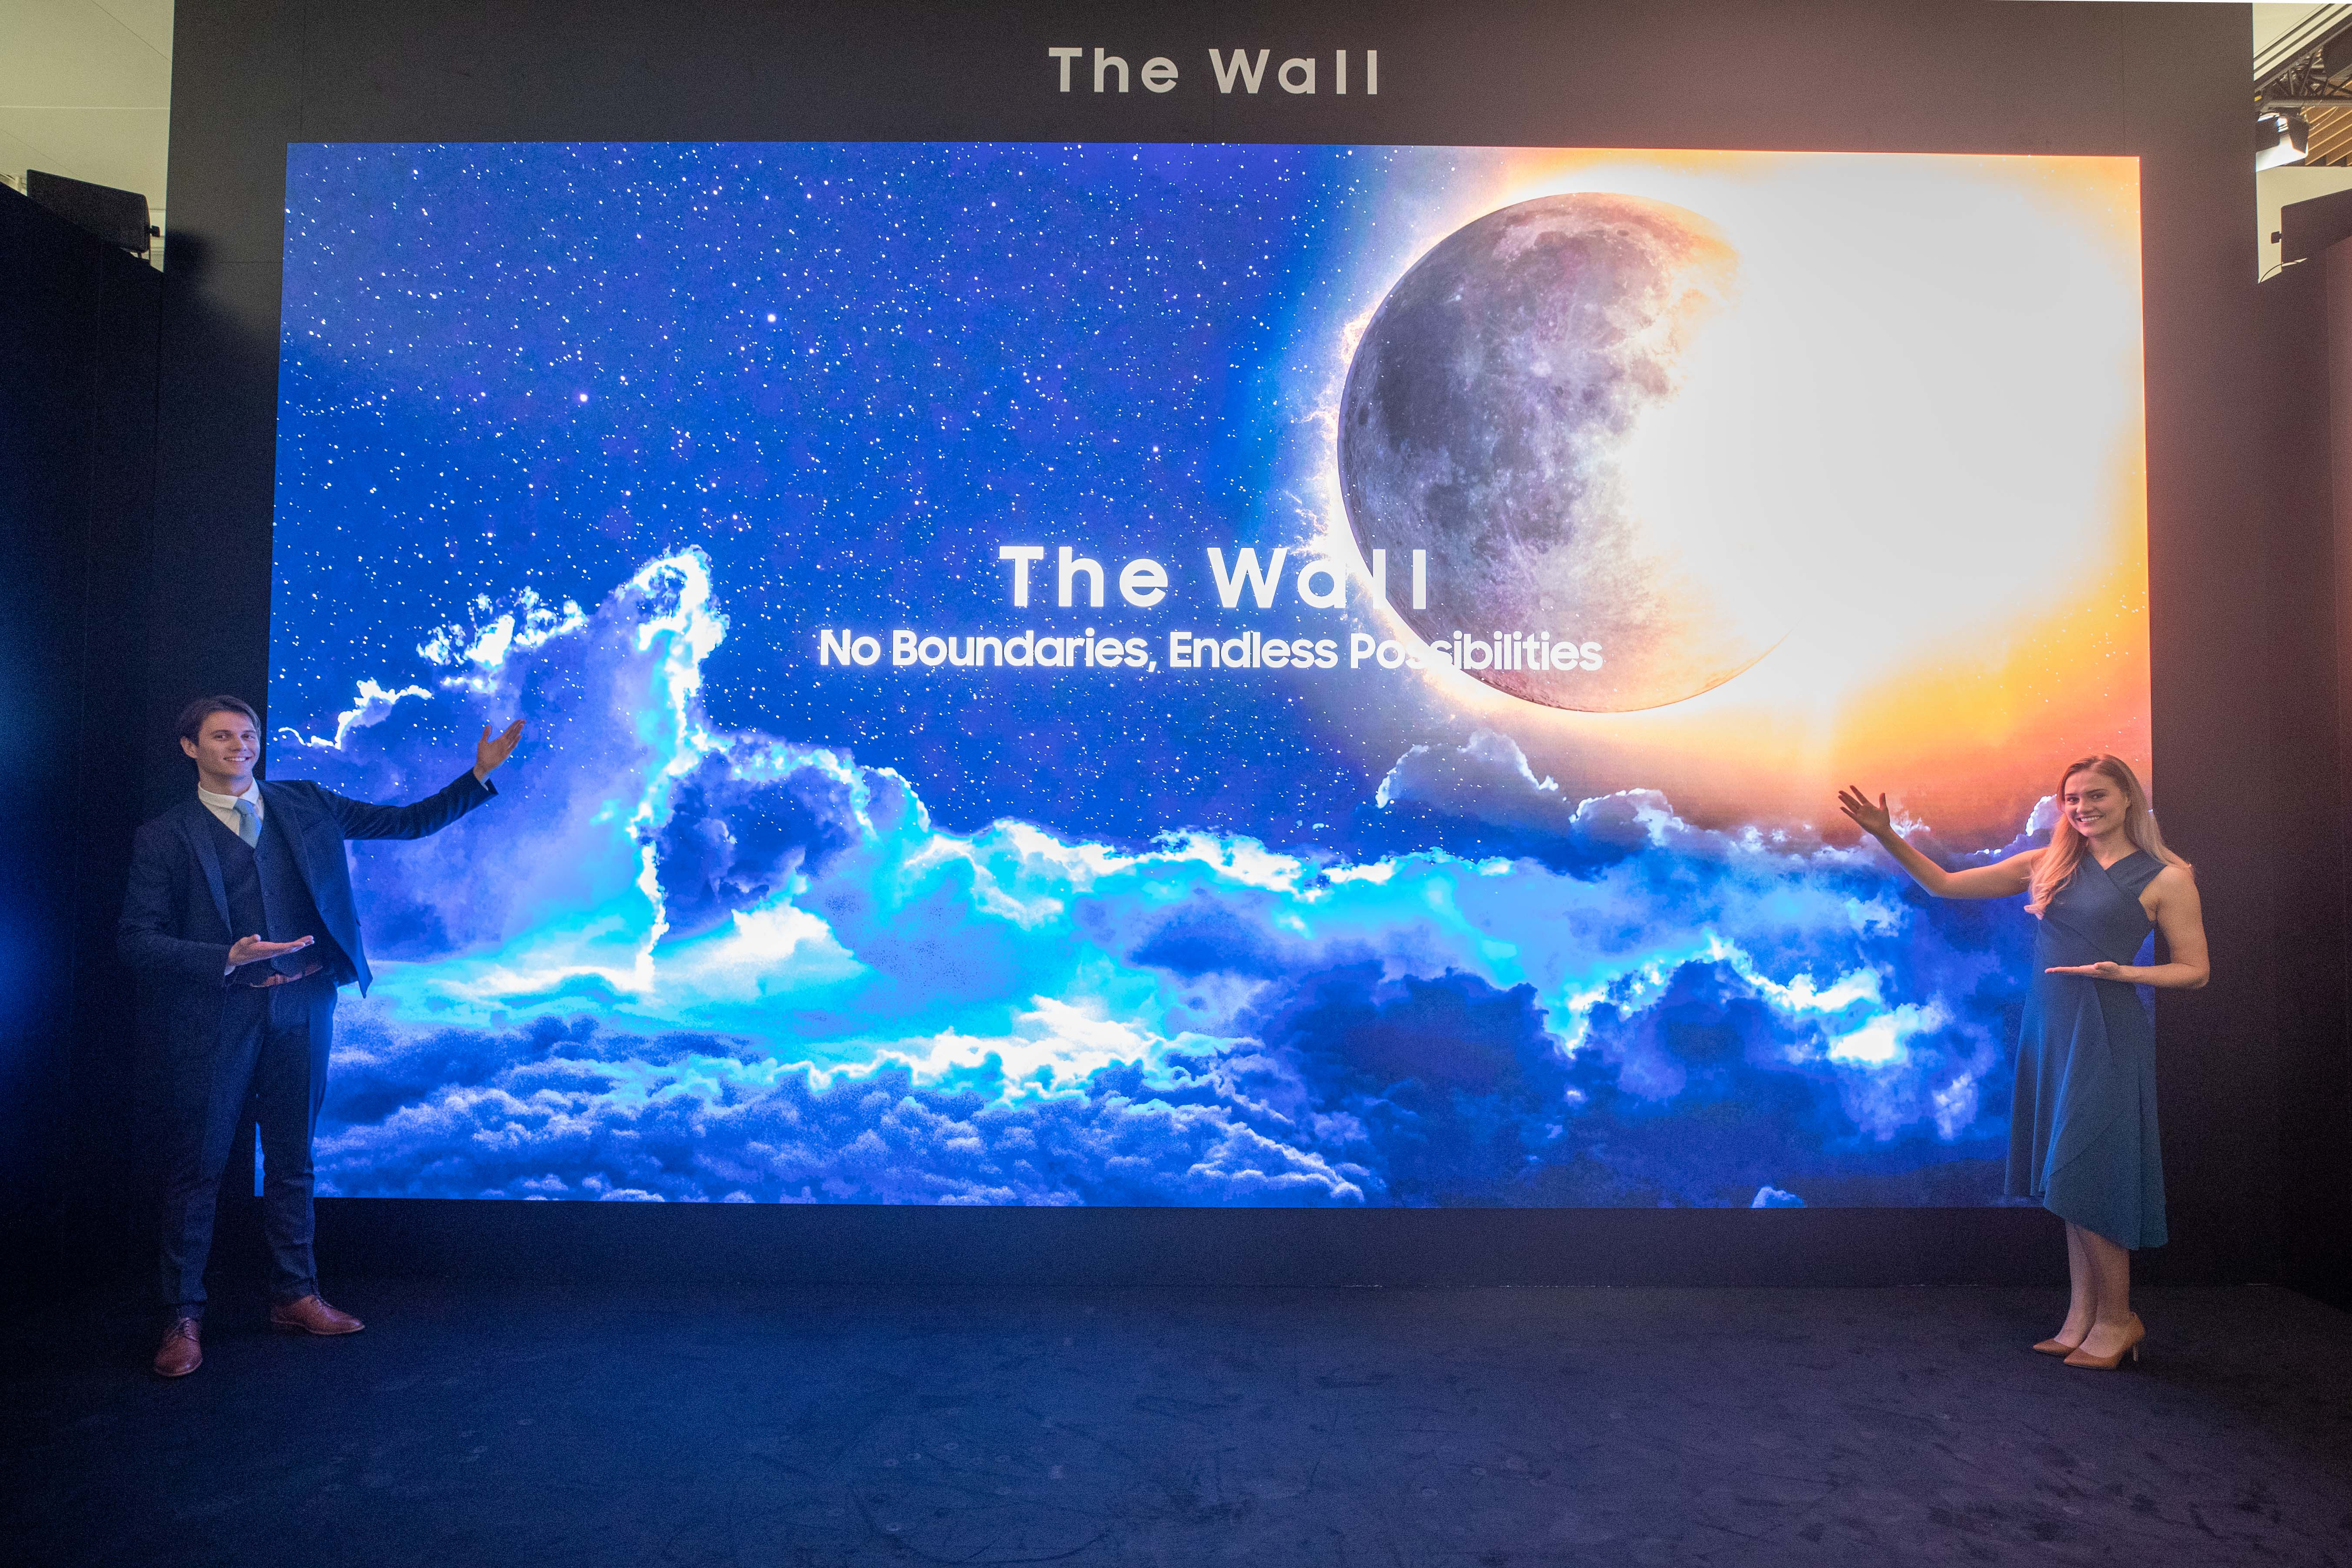 Samsung shows off The Wall for Business and more ahead of ISE 2020